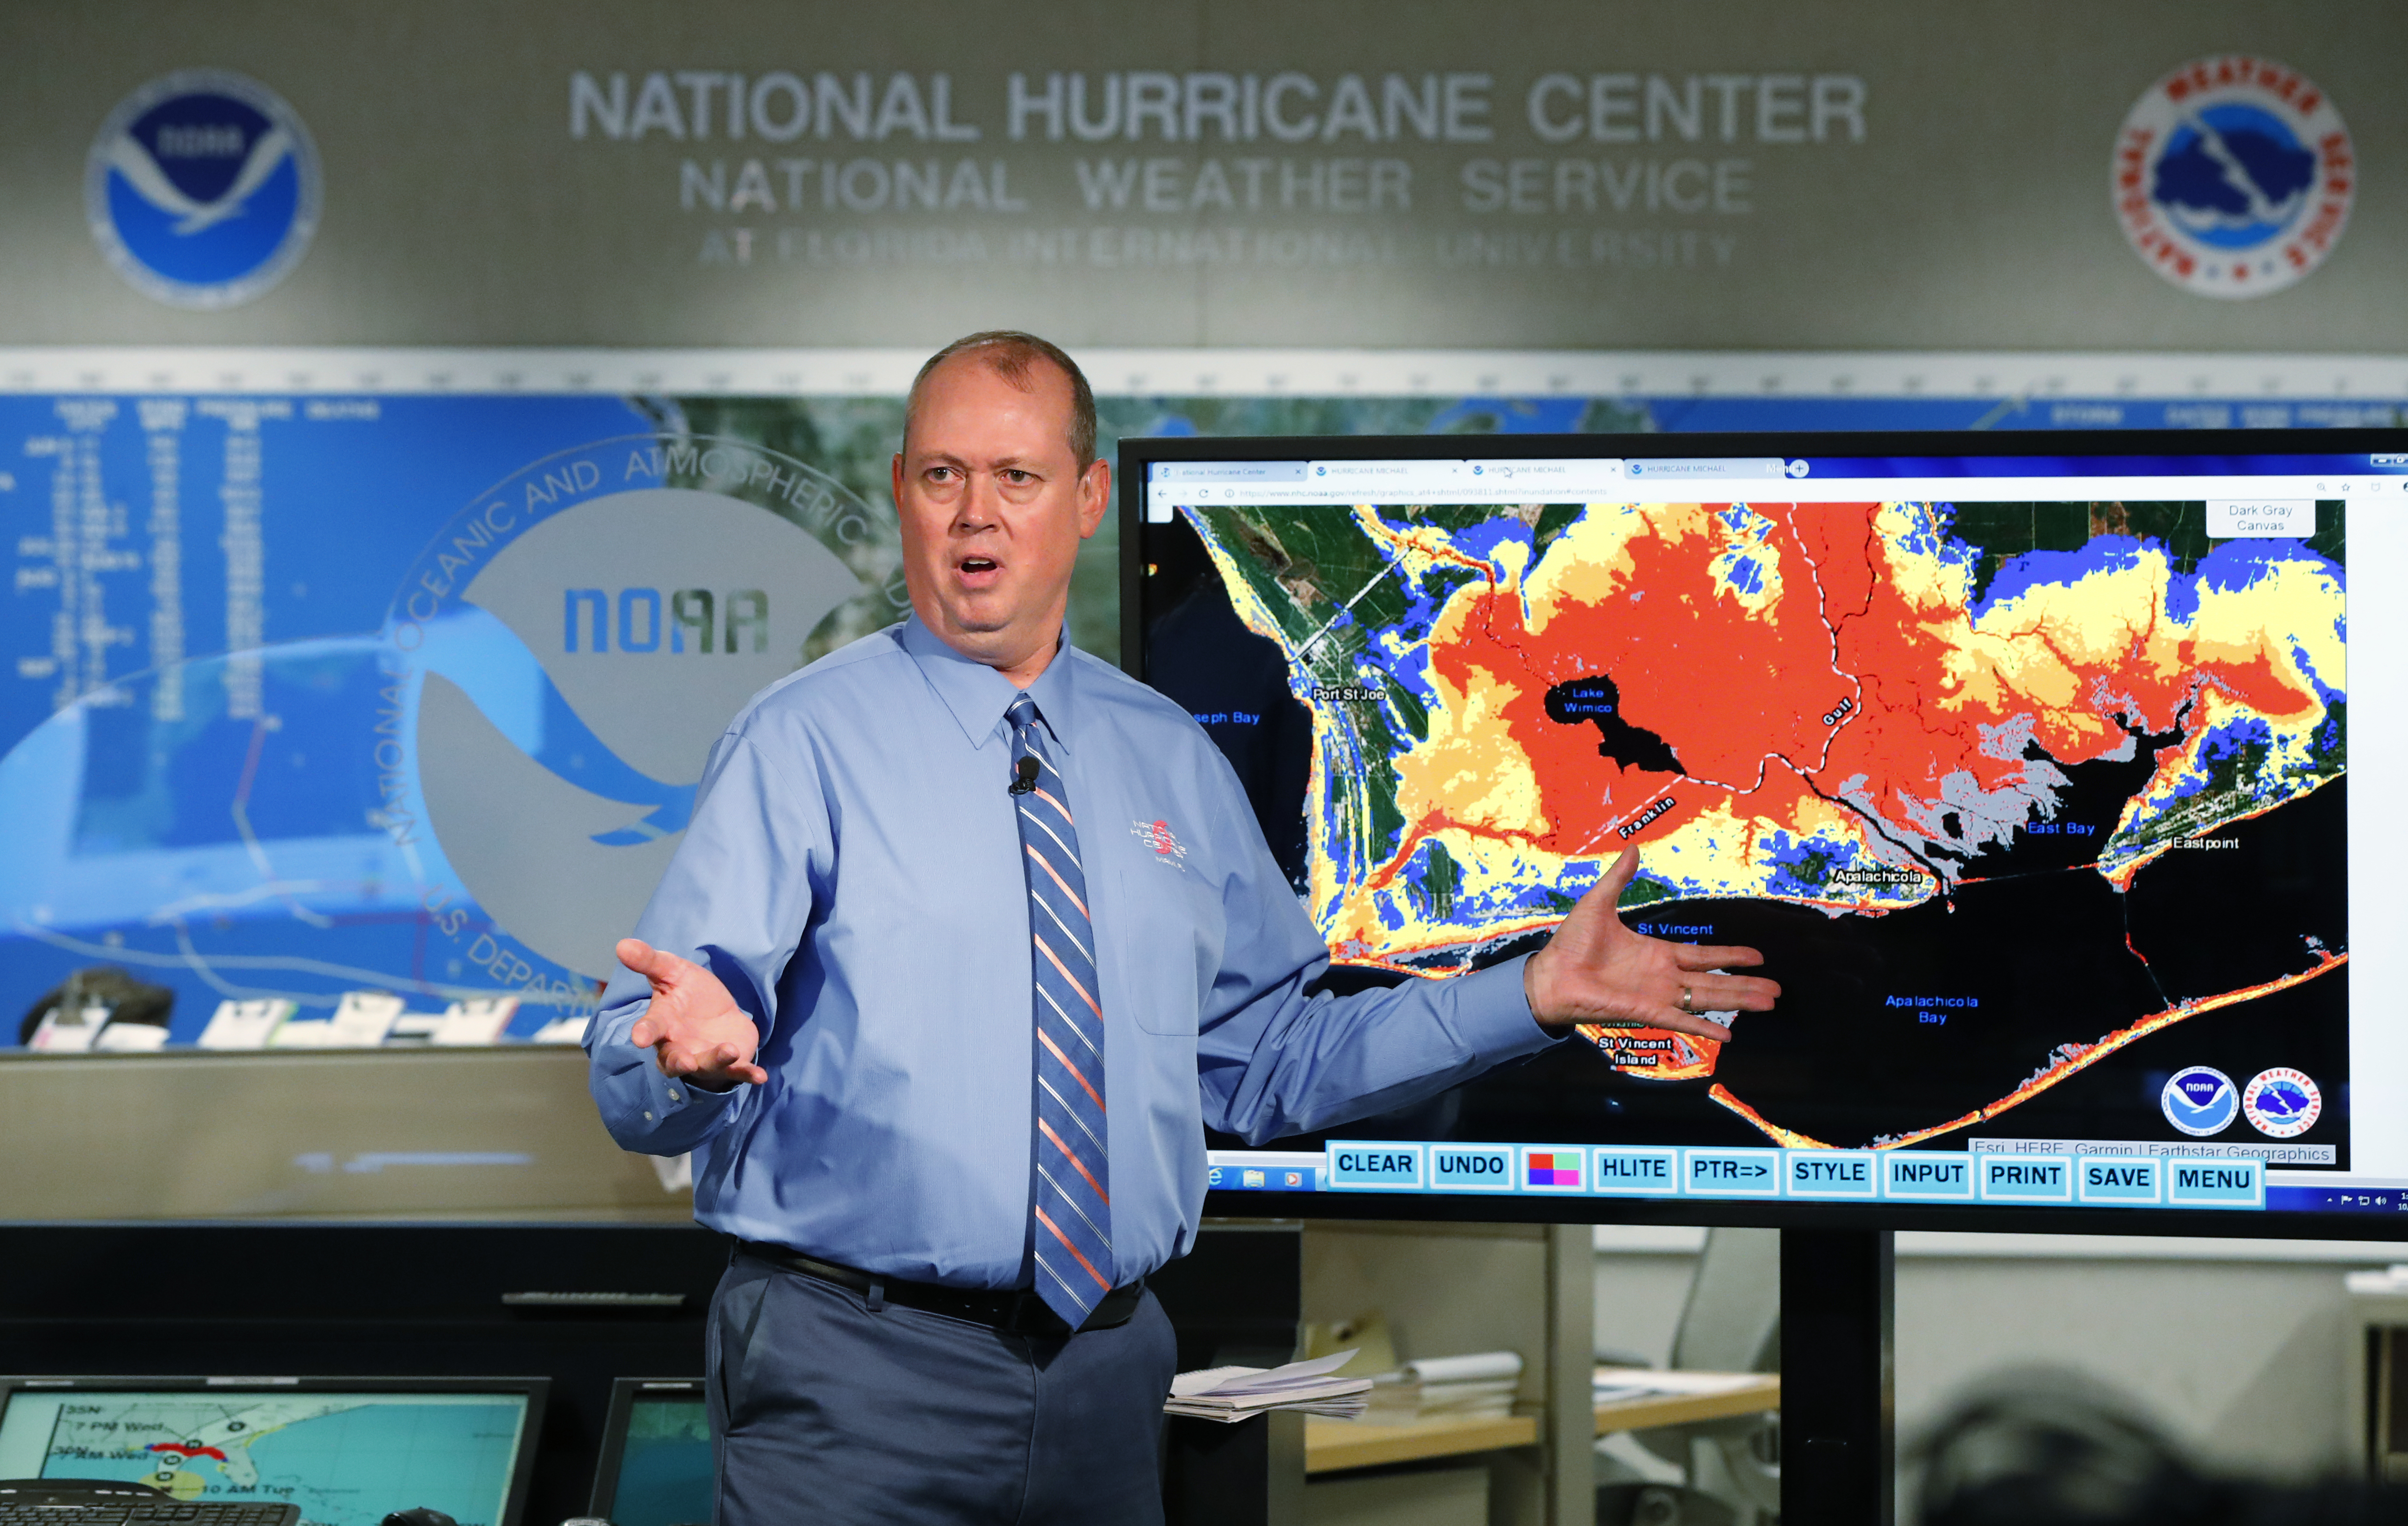 National Hurricane Center director Ken Graham, gestures as he talks about storm surge during a televised update on the status of Hurricane Michael, Tuesday, Oct. 9, 2018, at the Hurricane Center in Miami. At least 120,000 people along the Florida Panhandle were ordered to clear out Tuesday as Hurricane Michael rapidly picked up steam in the Gulf of Mexico and closed in with winds of 110 mph (175 kph) and a potential storm surge of 12 feet (3.7 meters). (AP Photo/Wilfredo Lee)